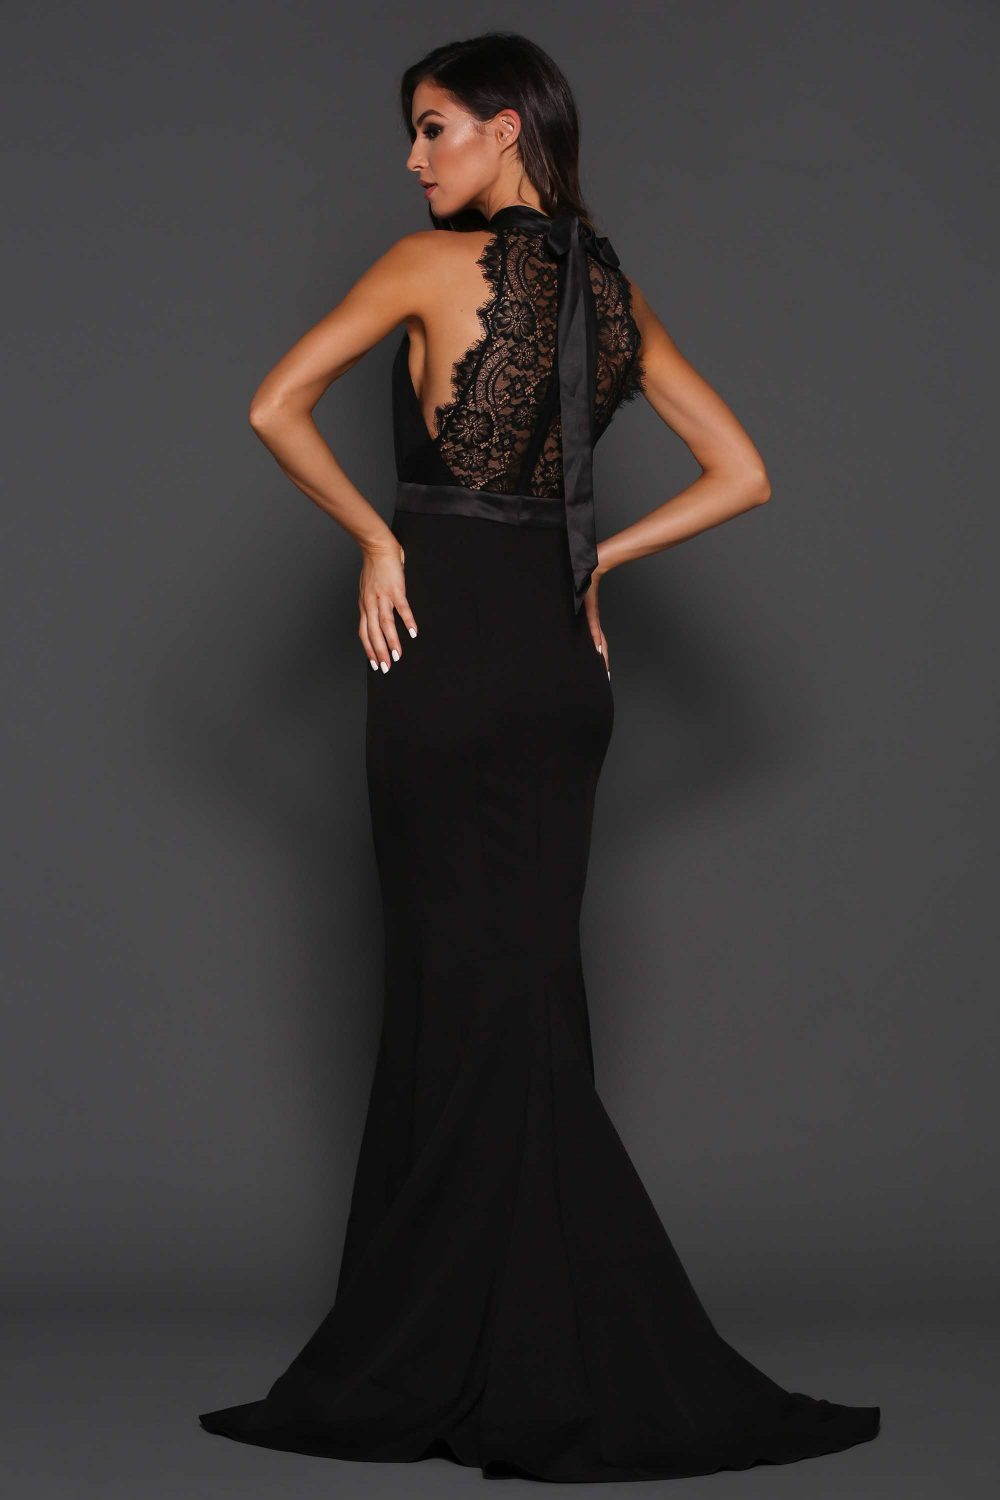 Pauline high halter neck lace evening dress - Sentani Boutique